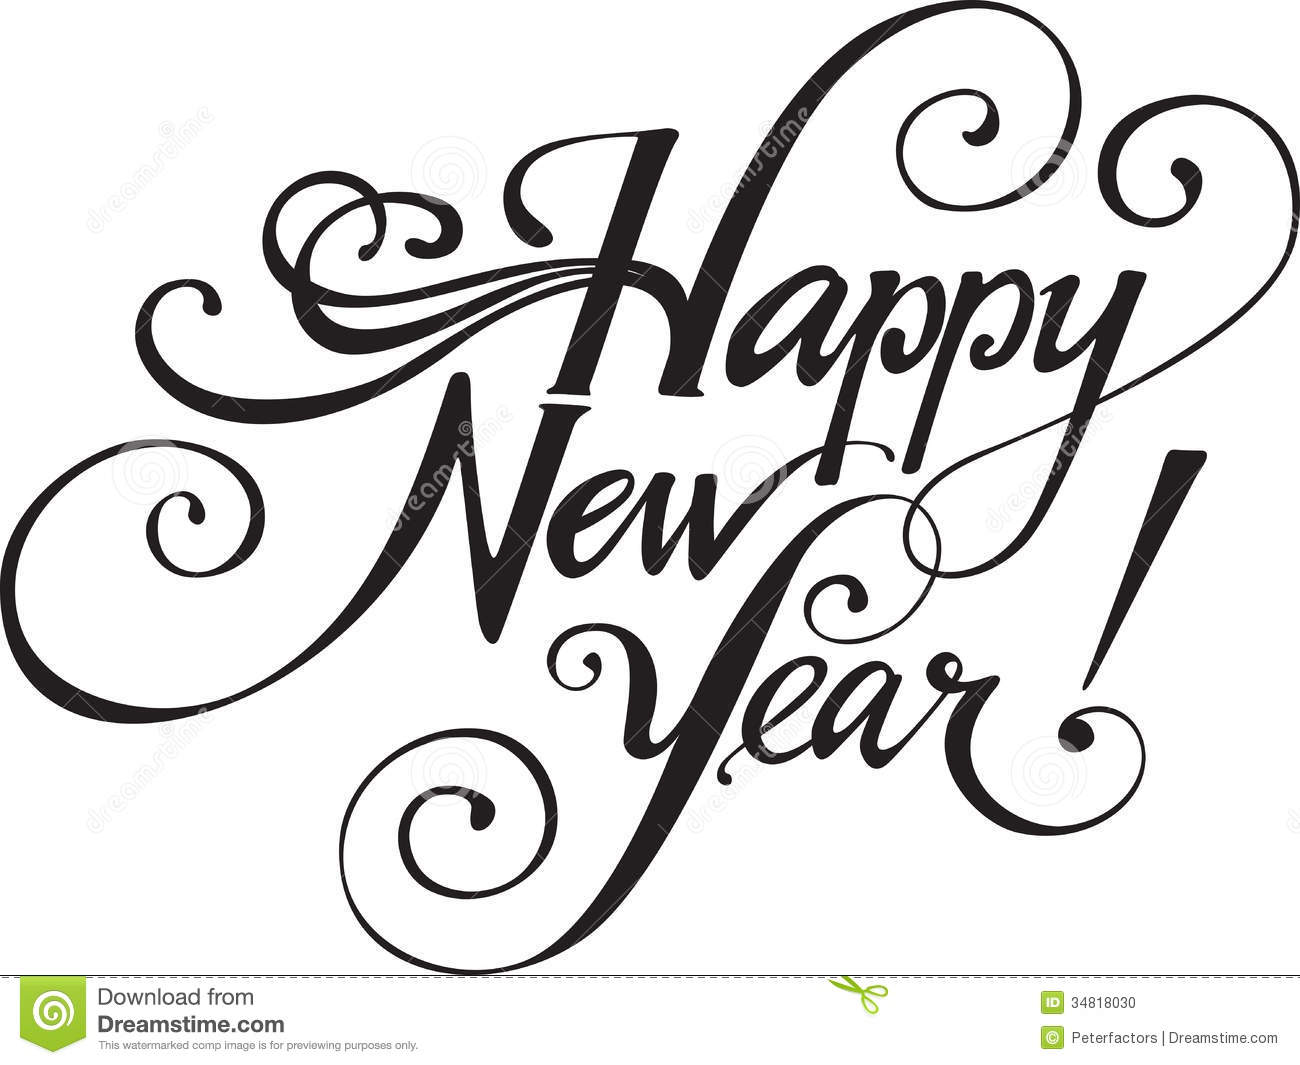 1969x1540 transparent clip art 1300x1065 uncategorized crime scene ni happy new year uncategorized